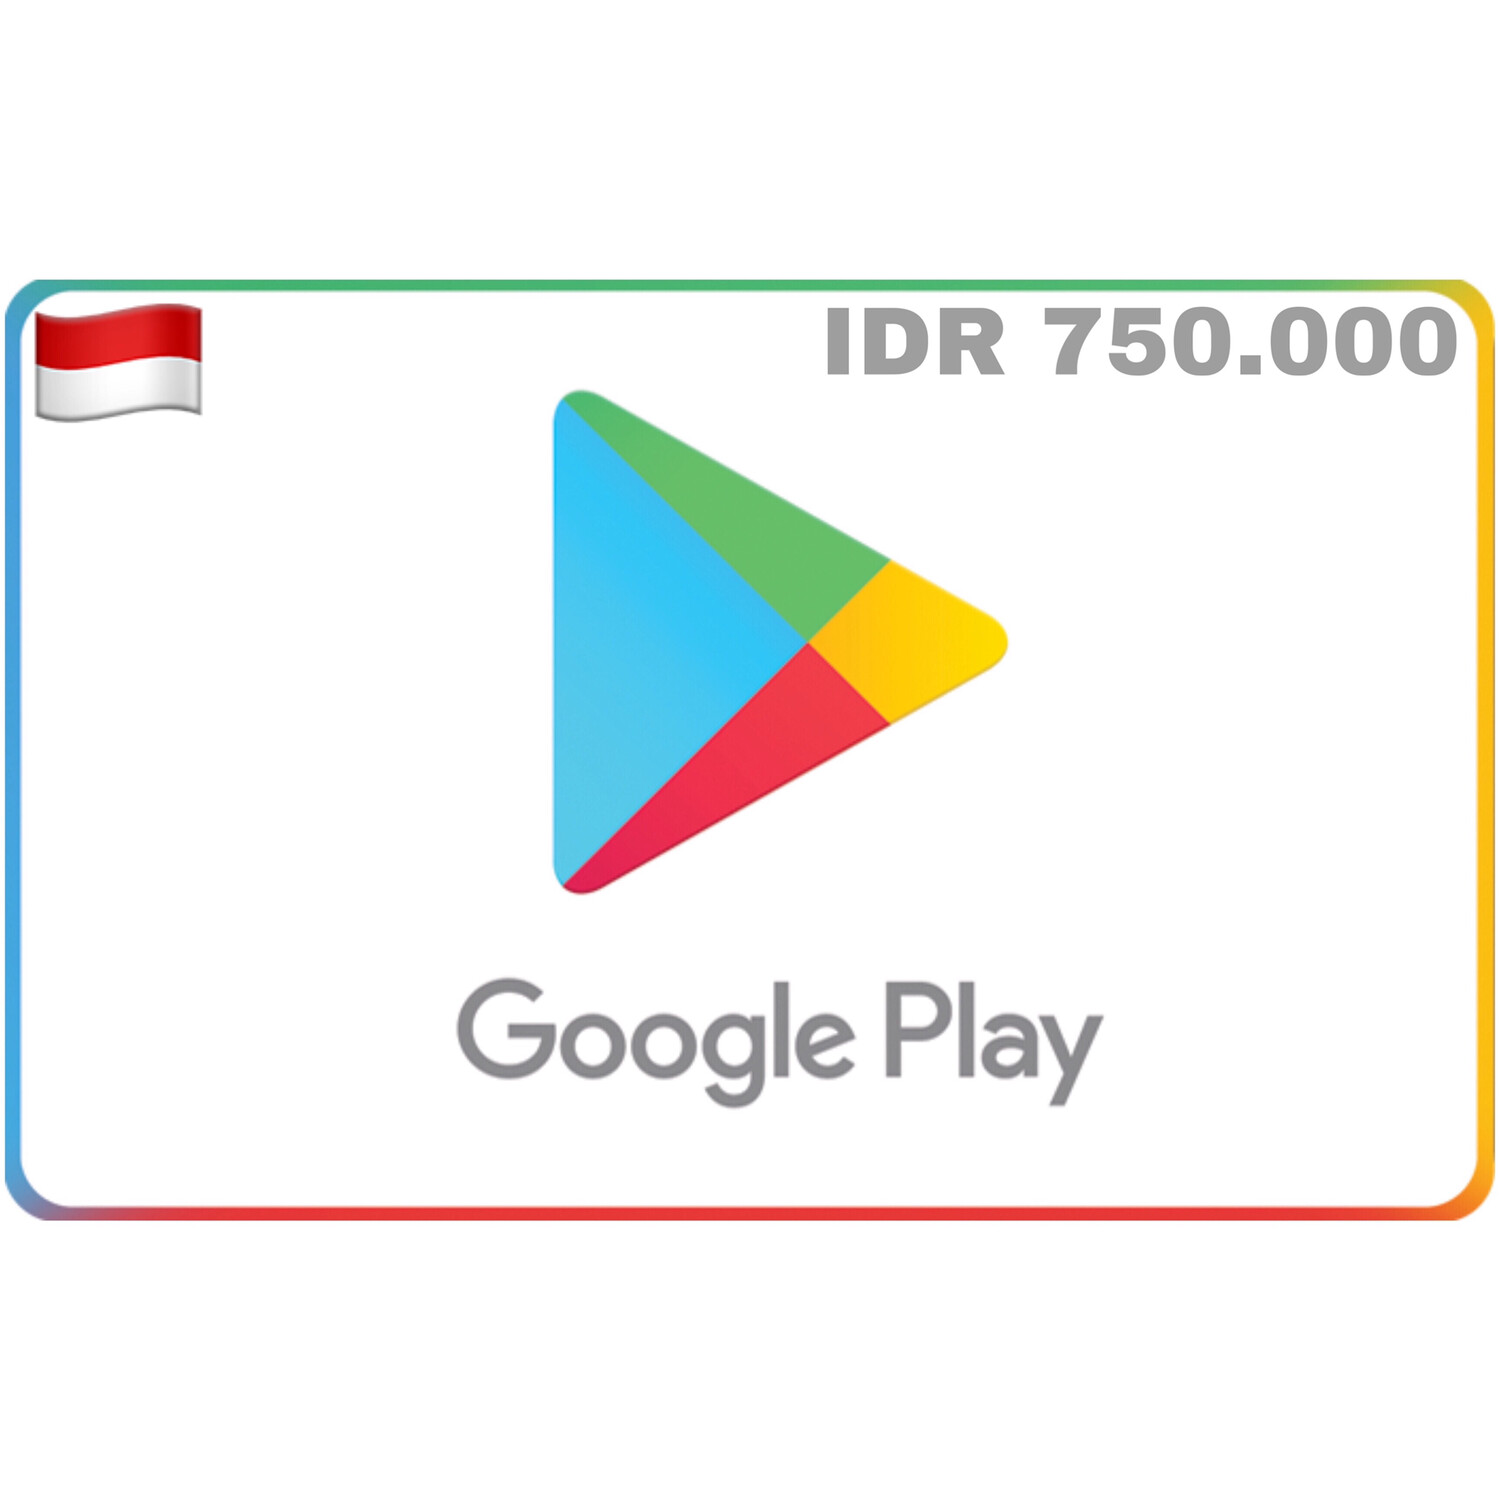 Google Play Indonesia IDR 750.000